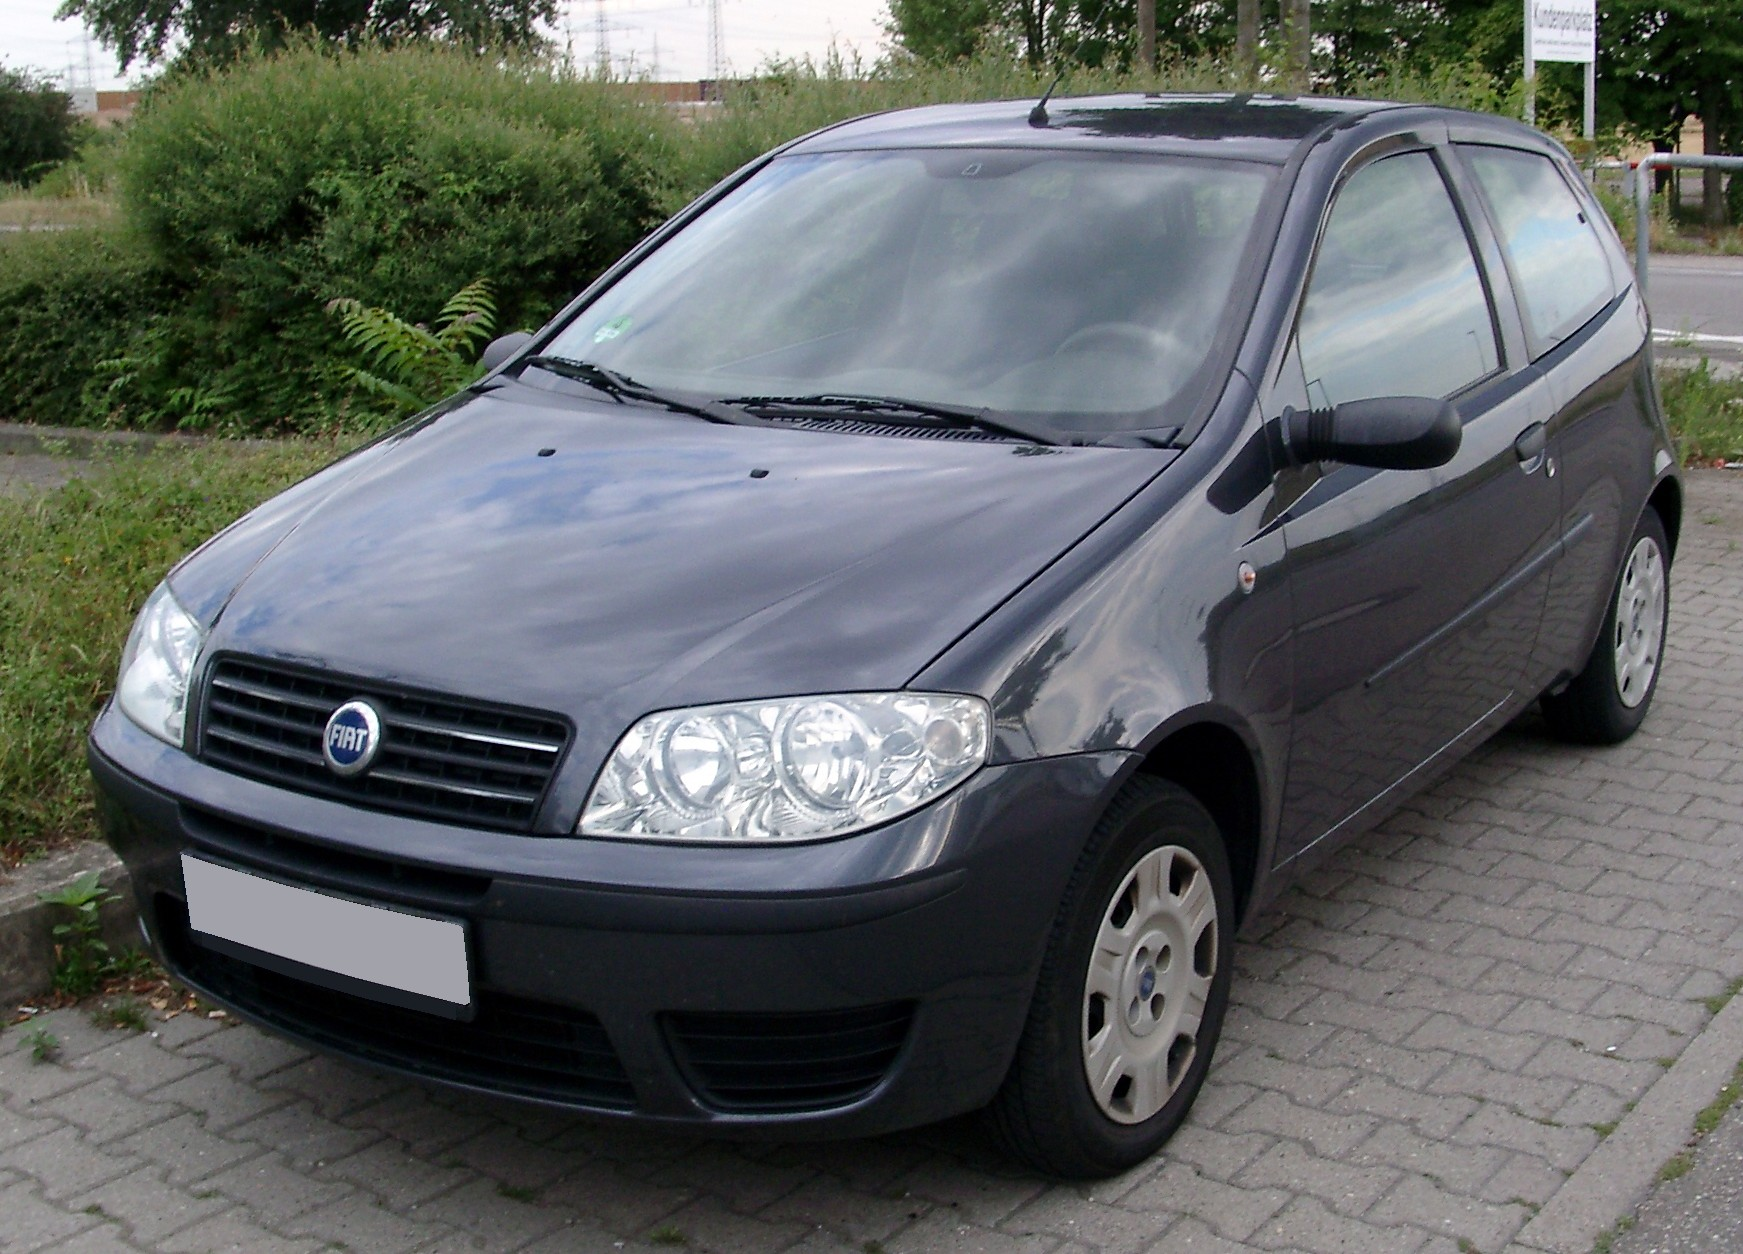 fiat punto 2008 review amazing pictures and images look at the car. Black Bedroom Furniture Sets. Home Design Ideas